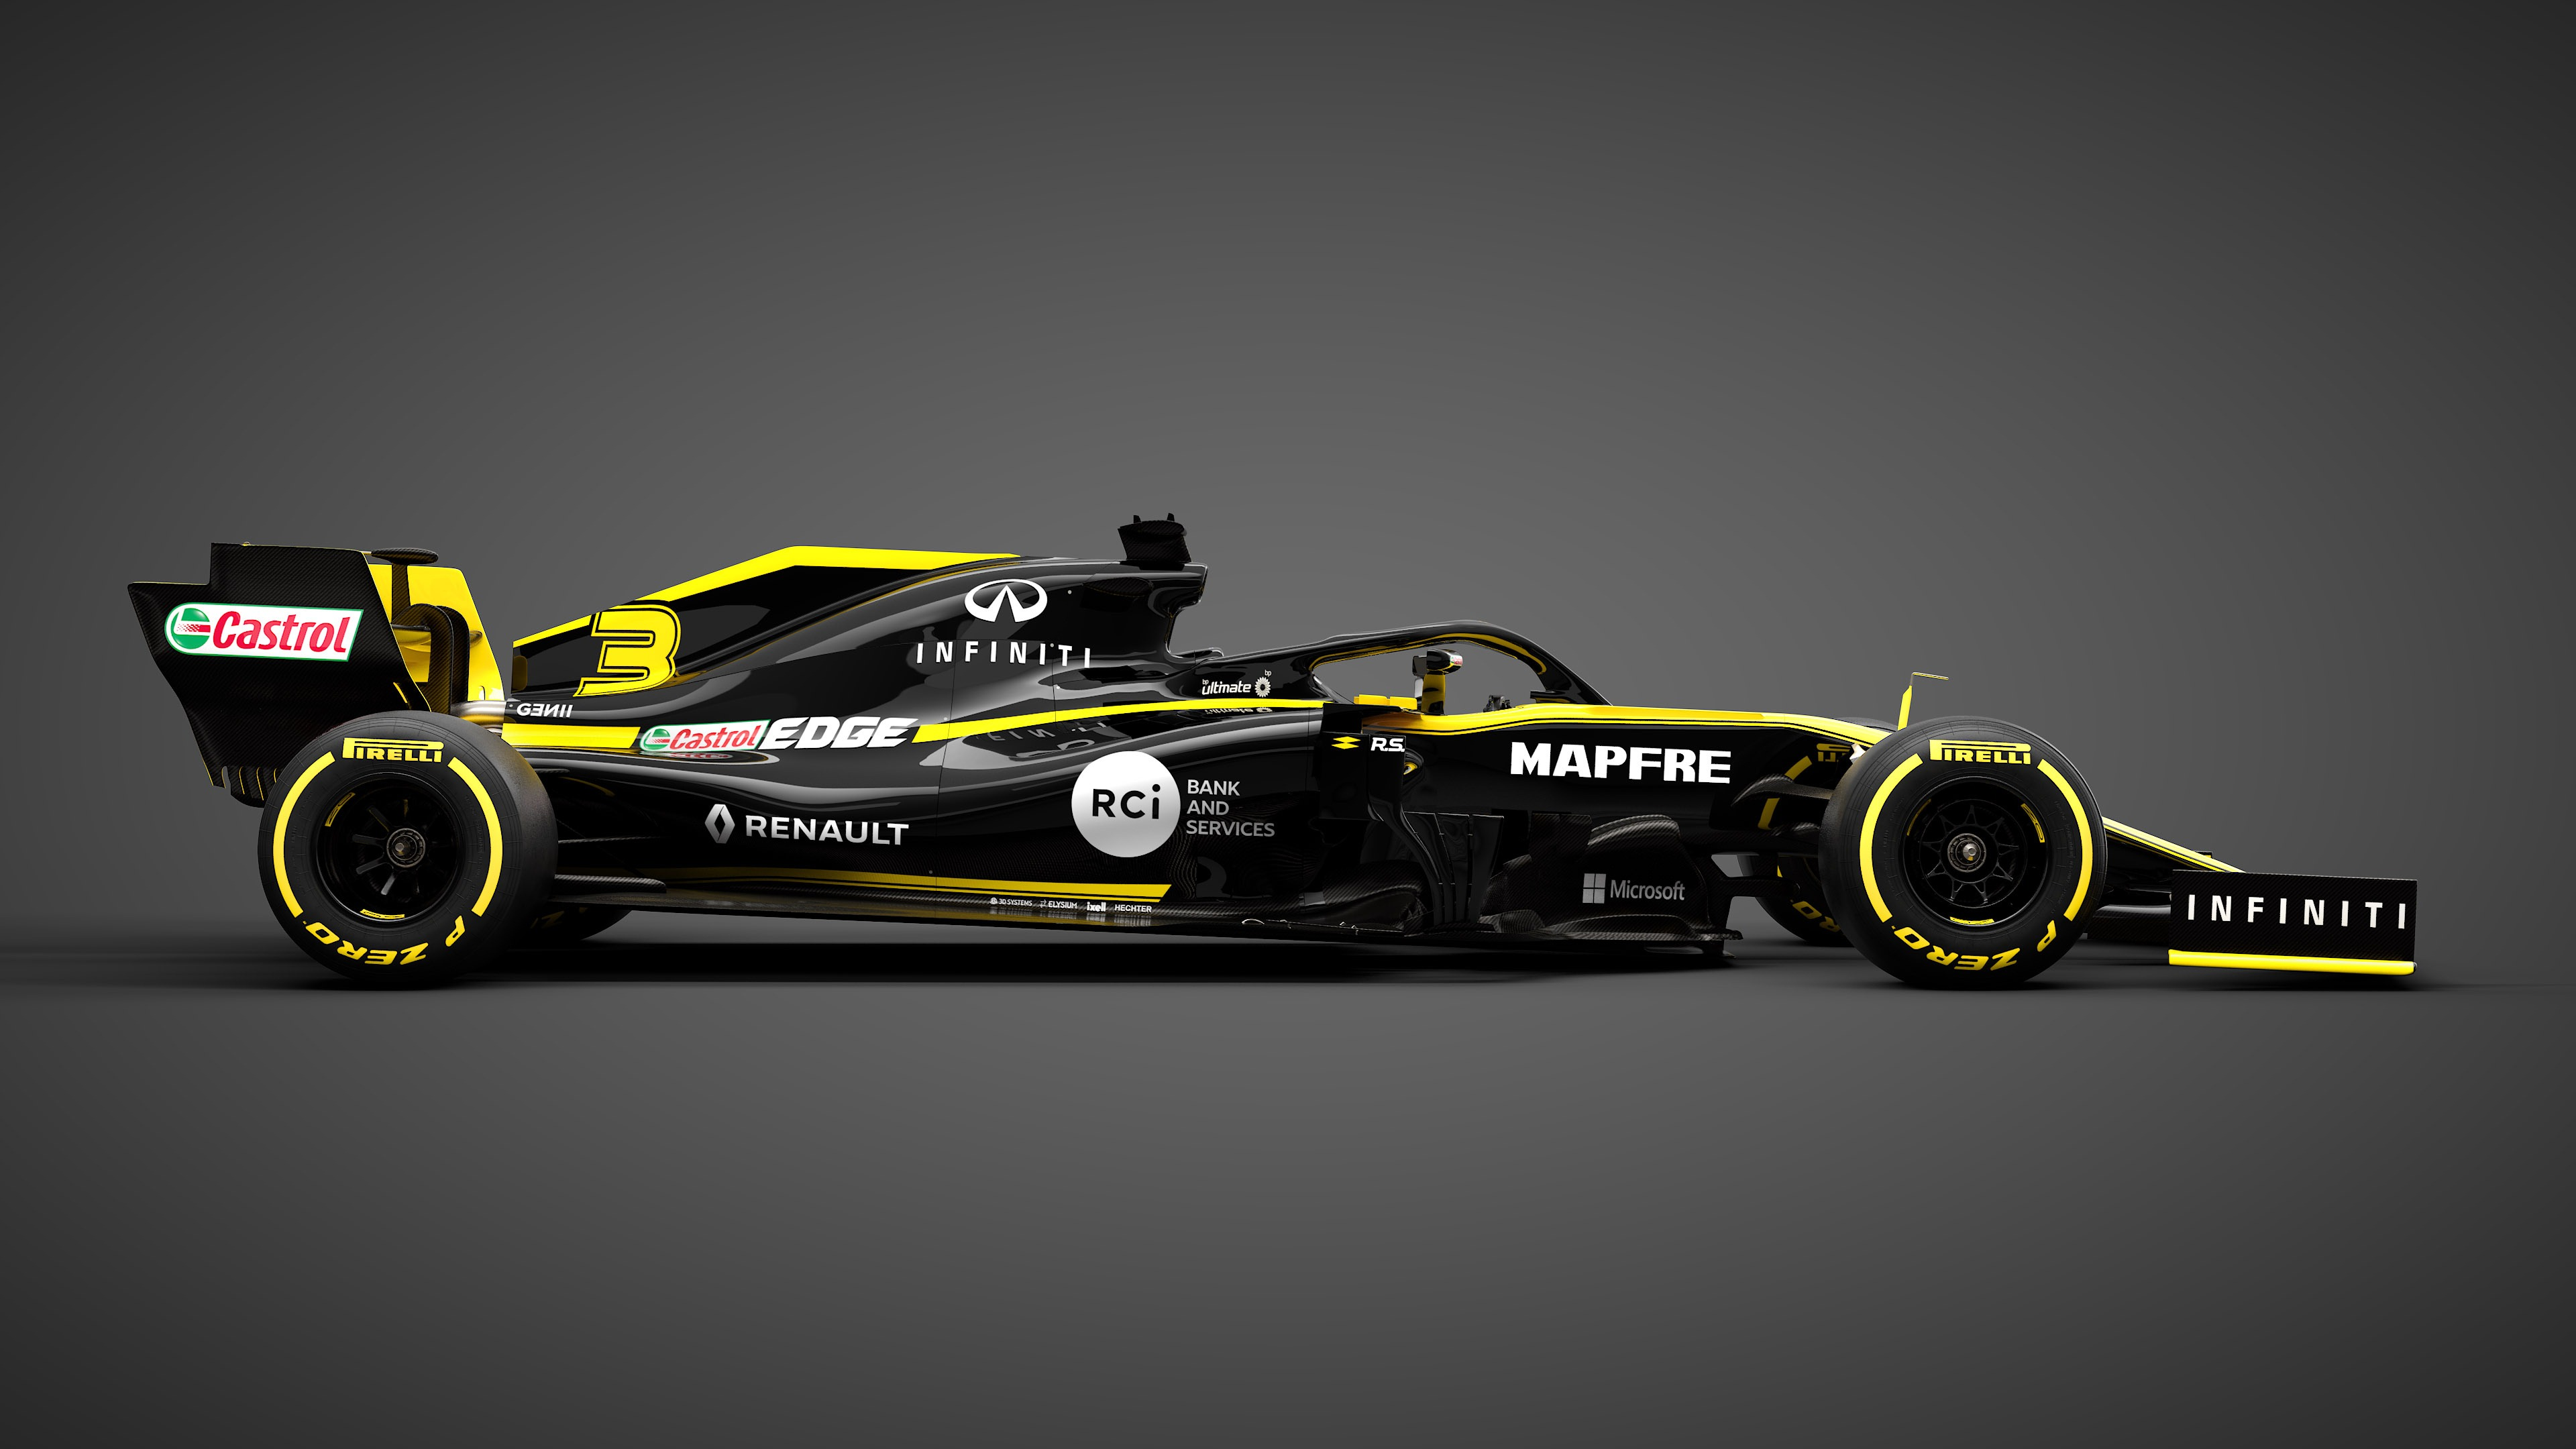 2019 renault rs19 f1 car launch pictures f1. Black Bedroom Furniture Sets. Home Design Ideas